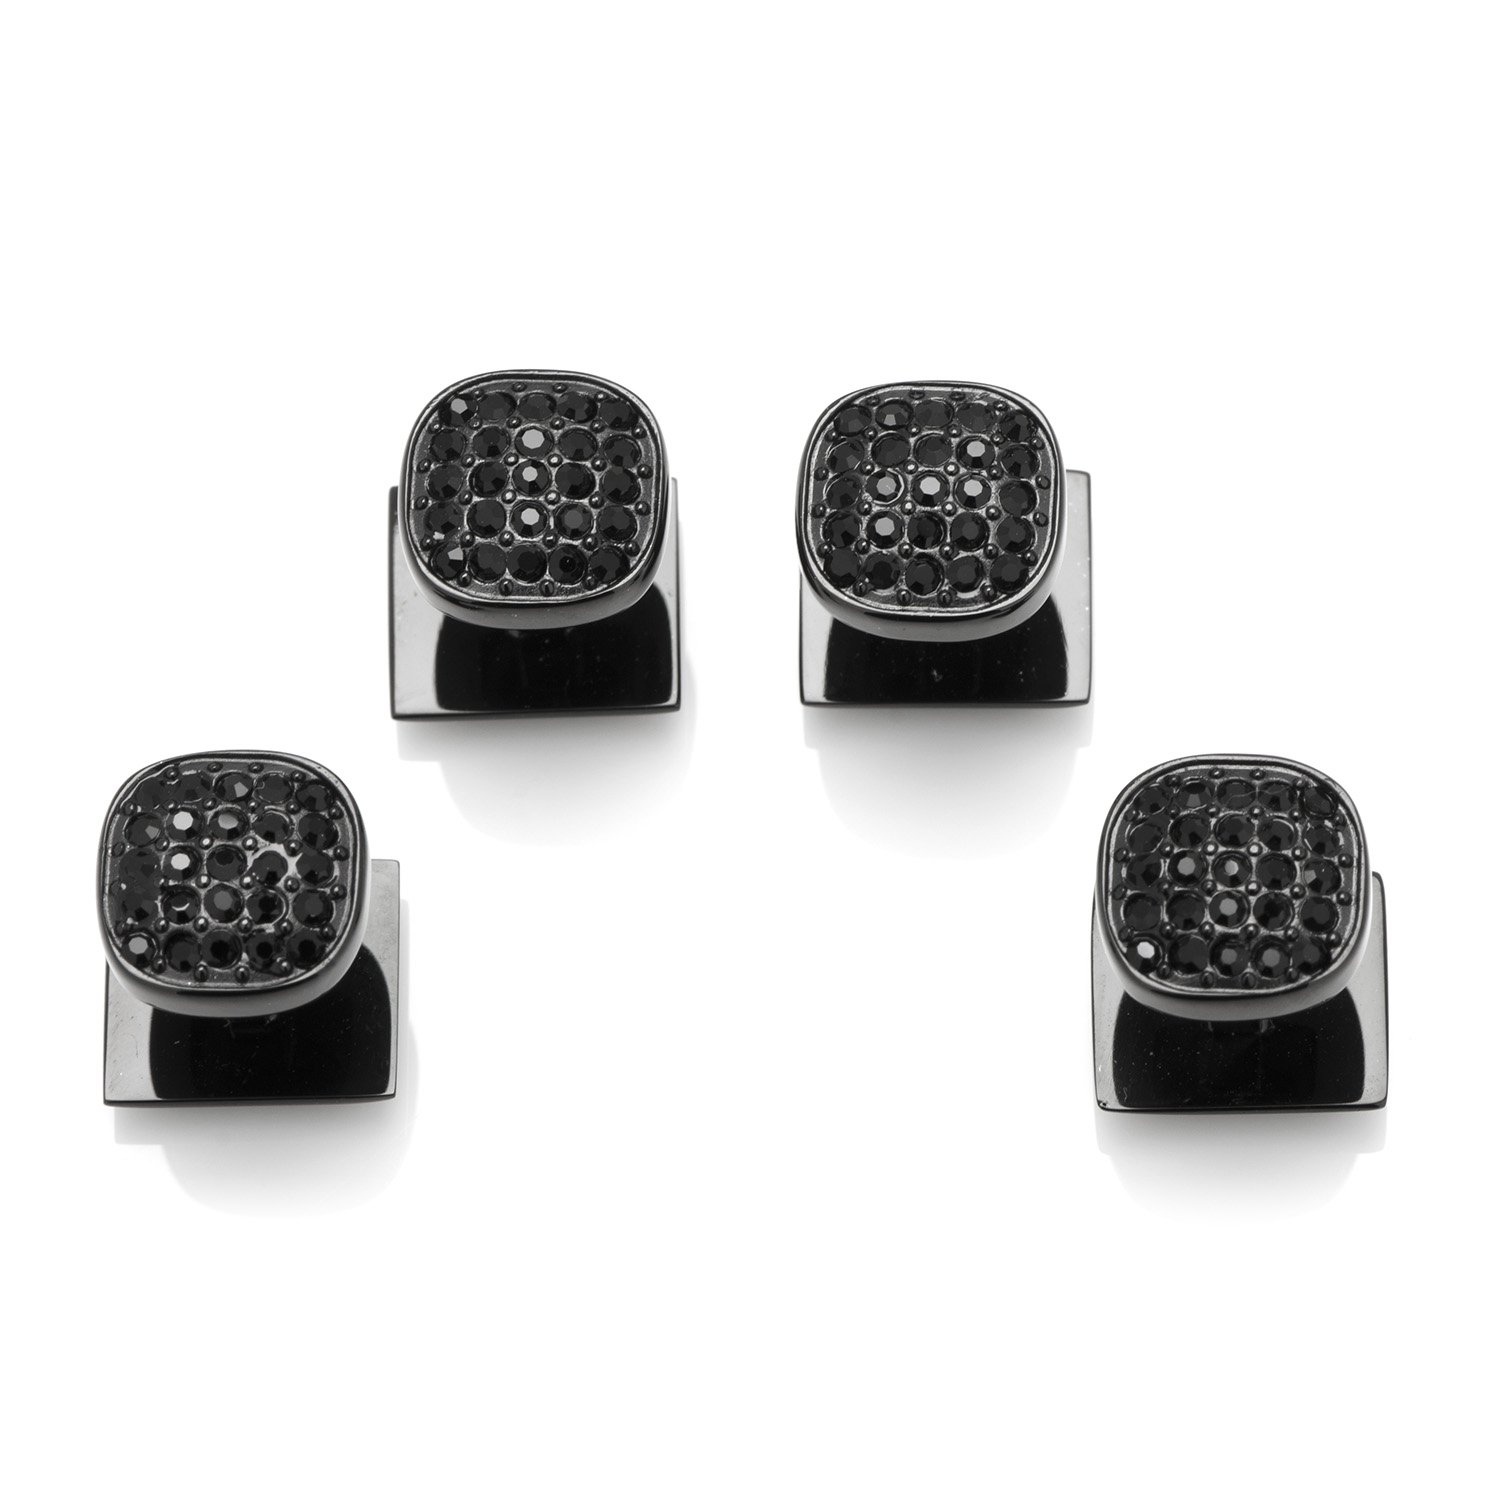 Ox and Bull Trading Co. Black Stainless Steel Black Pave Crystal Studs OB-BCRYST-BK-ST